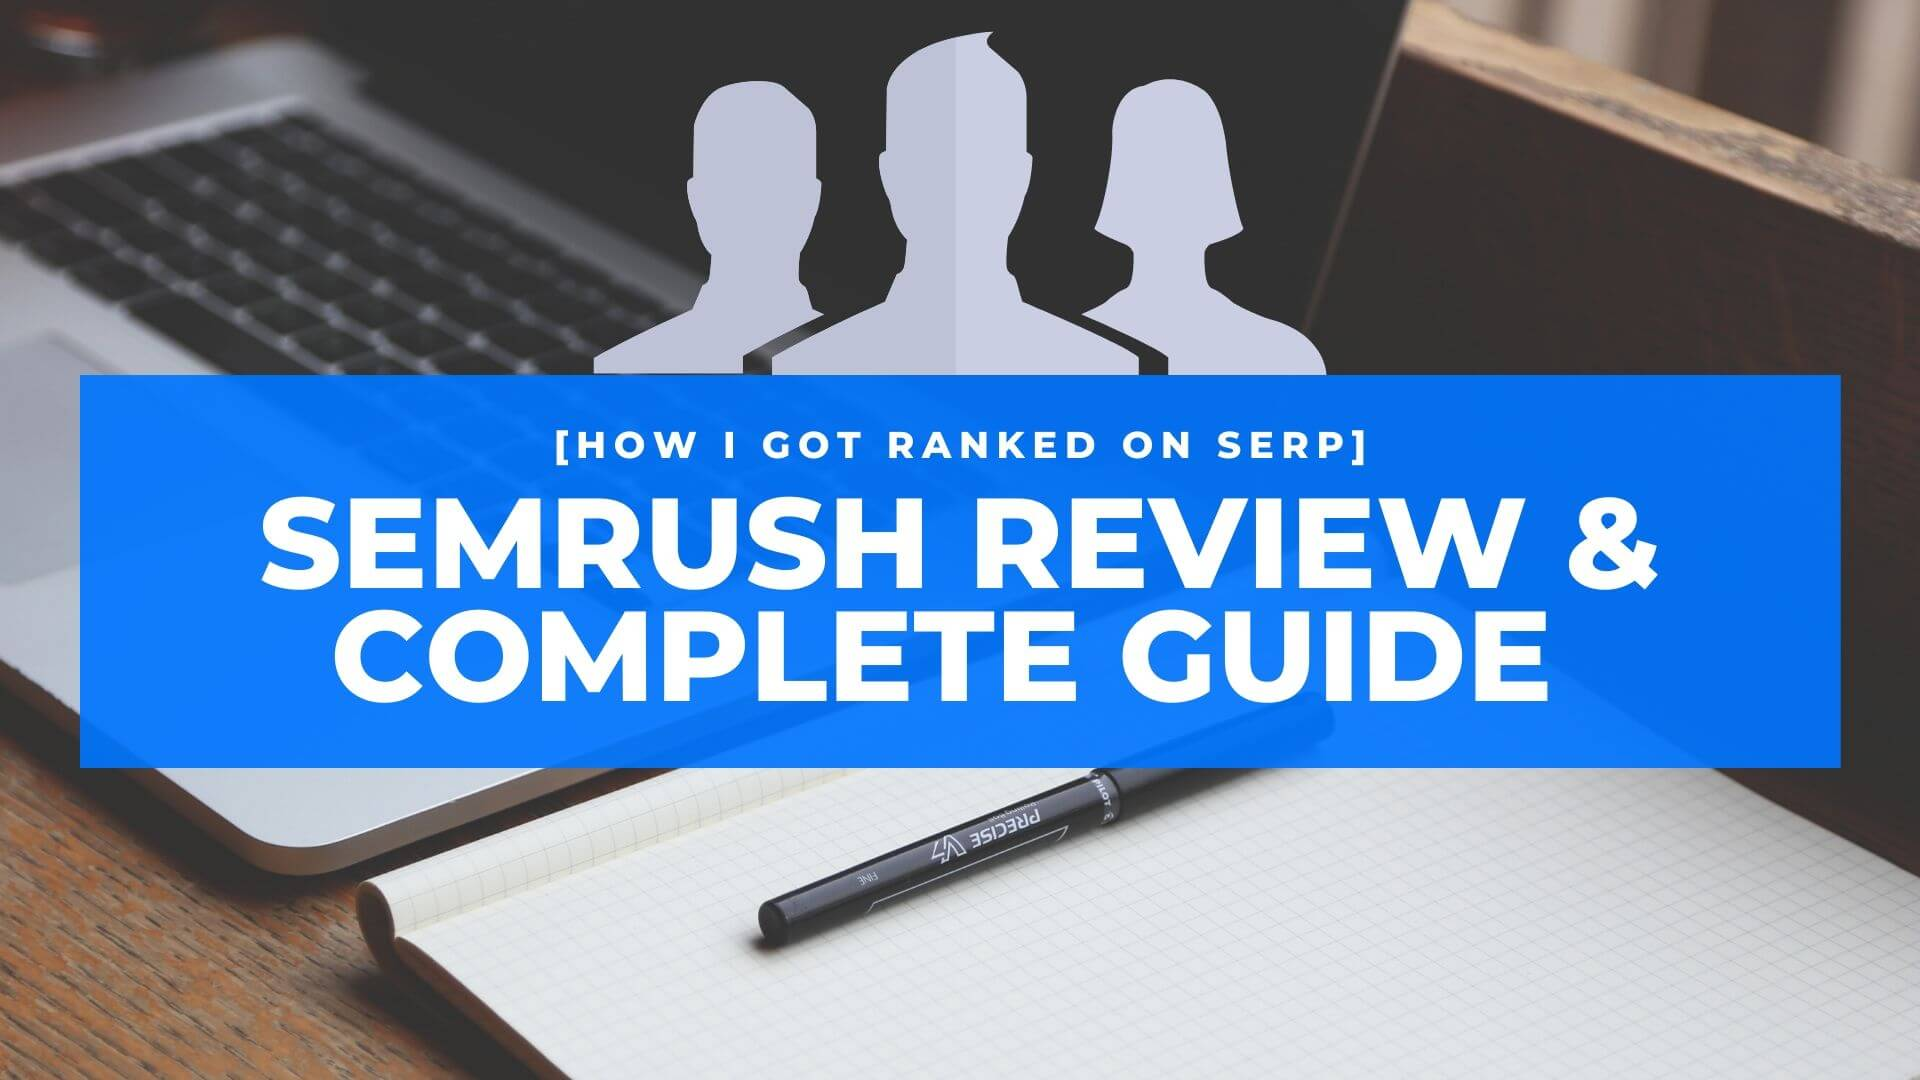 SEMrush review: Boost your earnings [How I got ranked on Google]